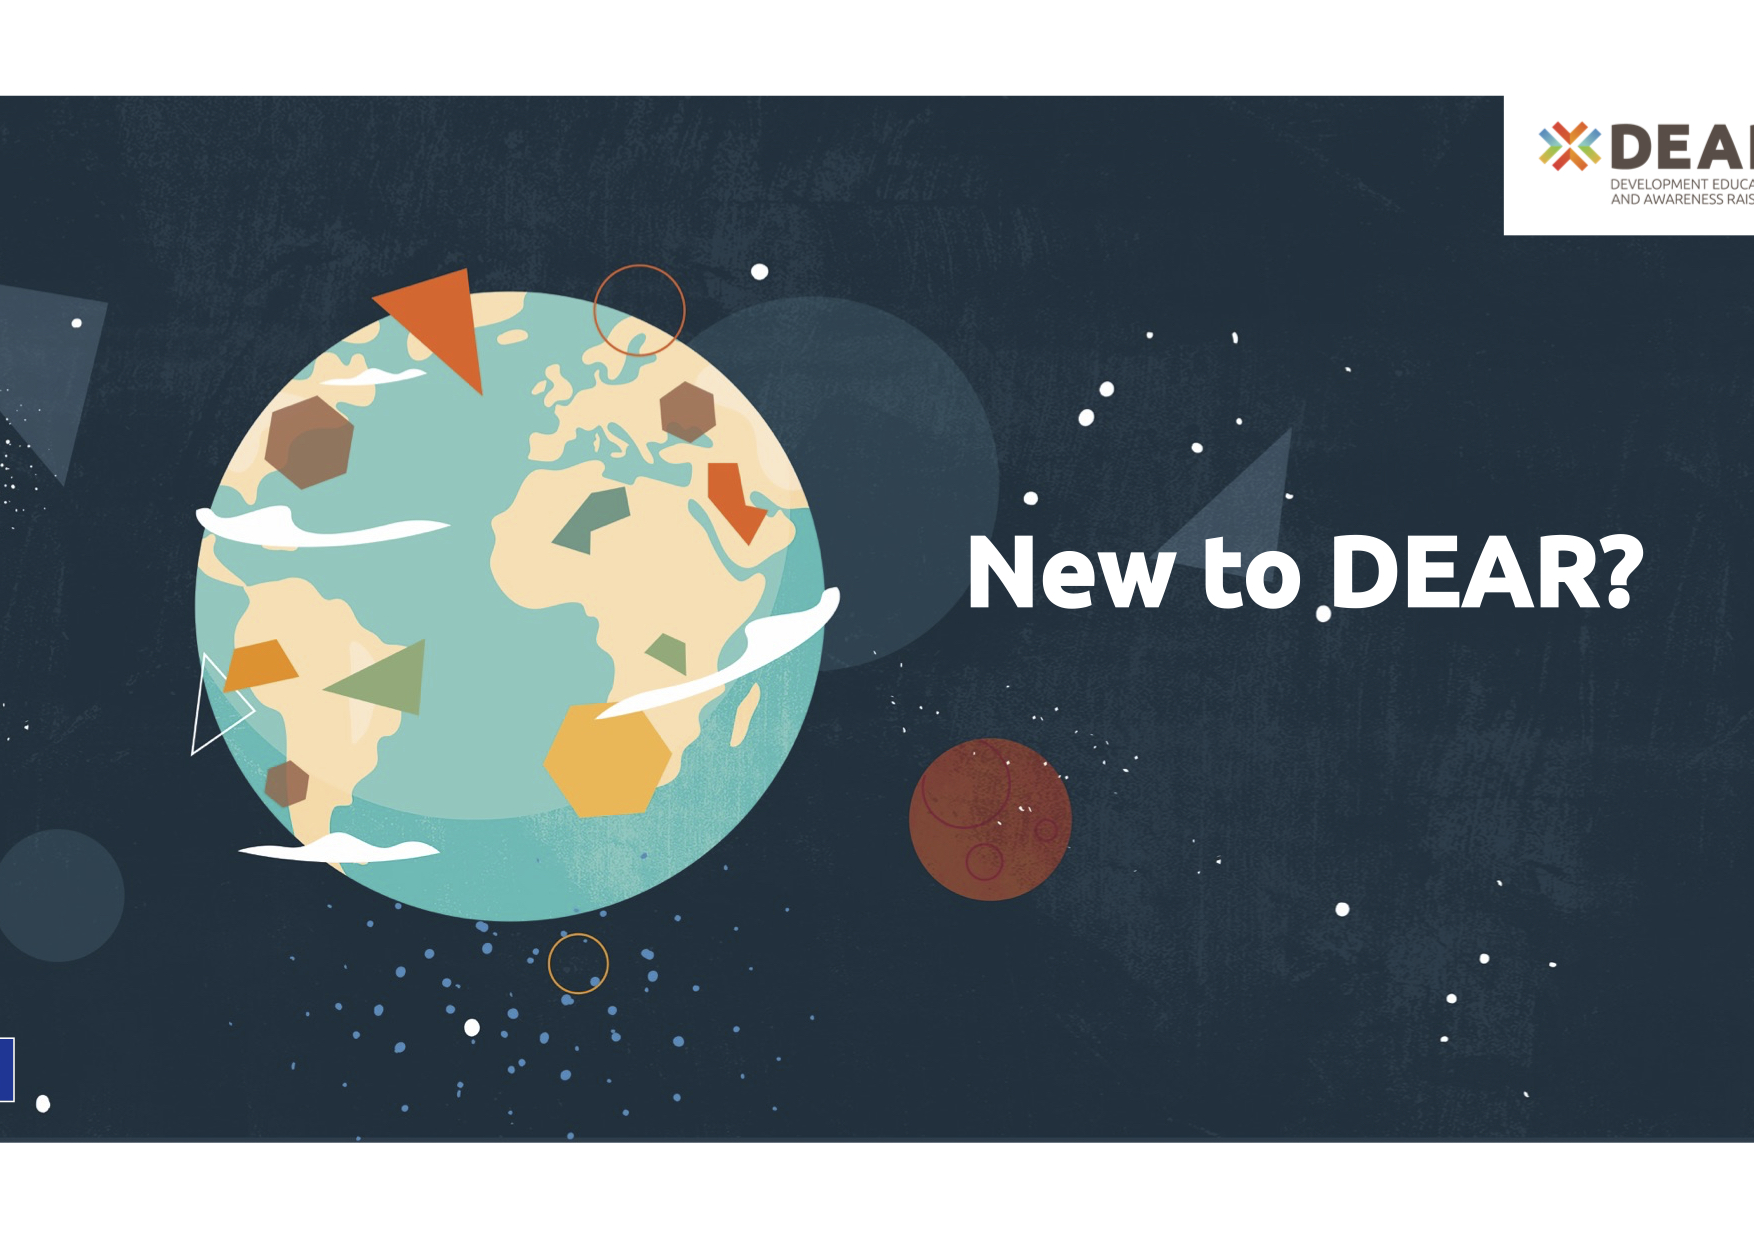 New to DEAR?